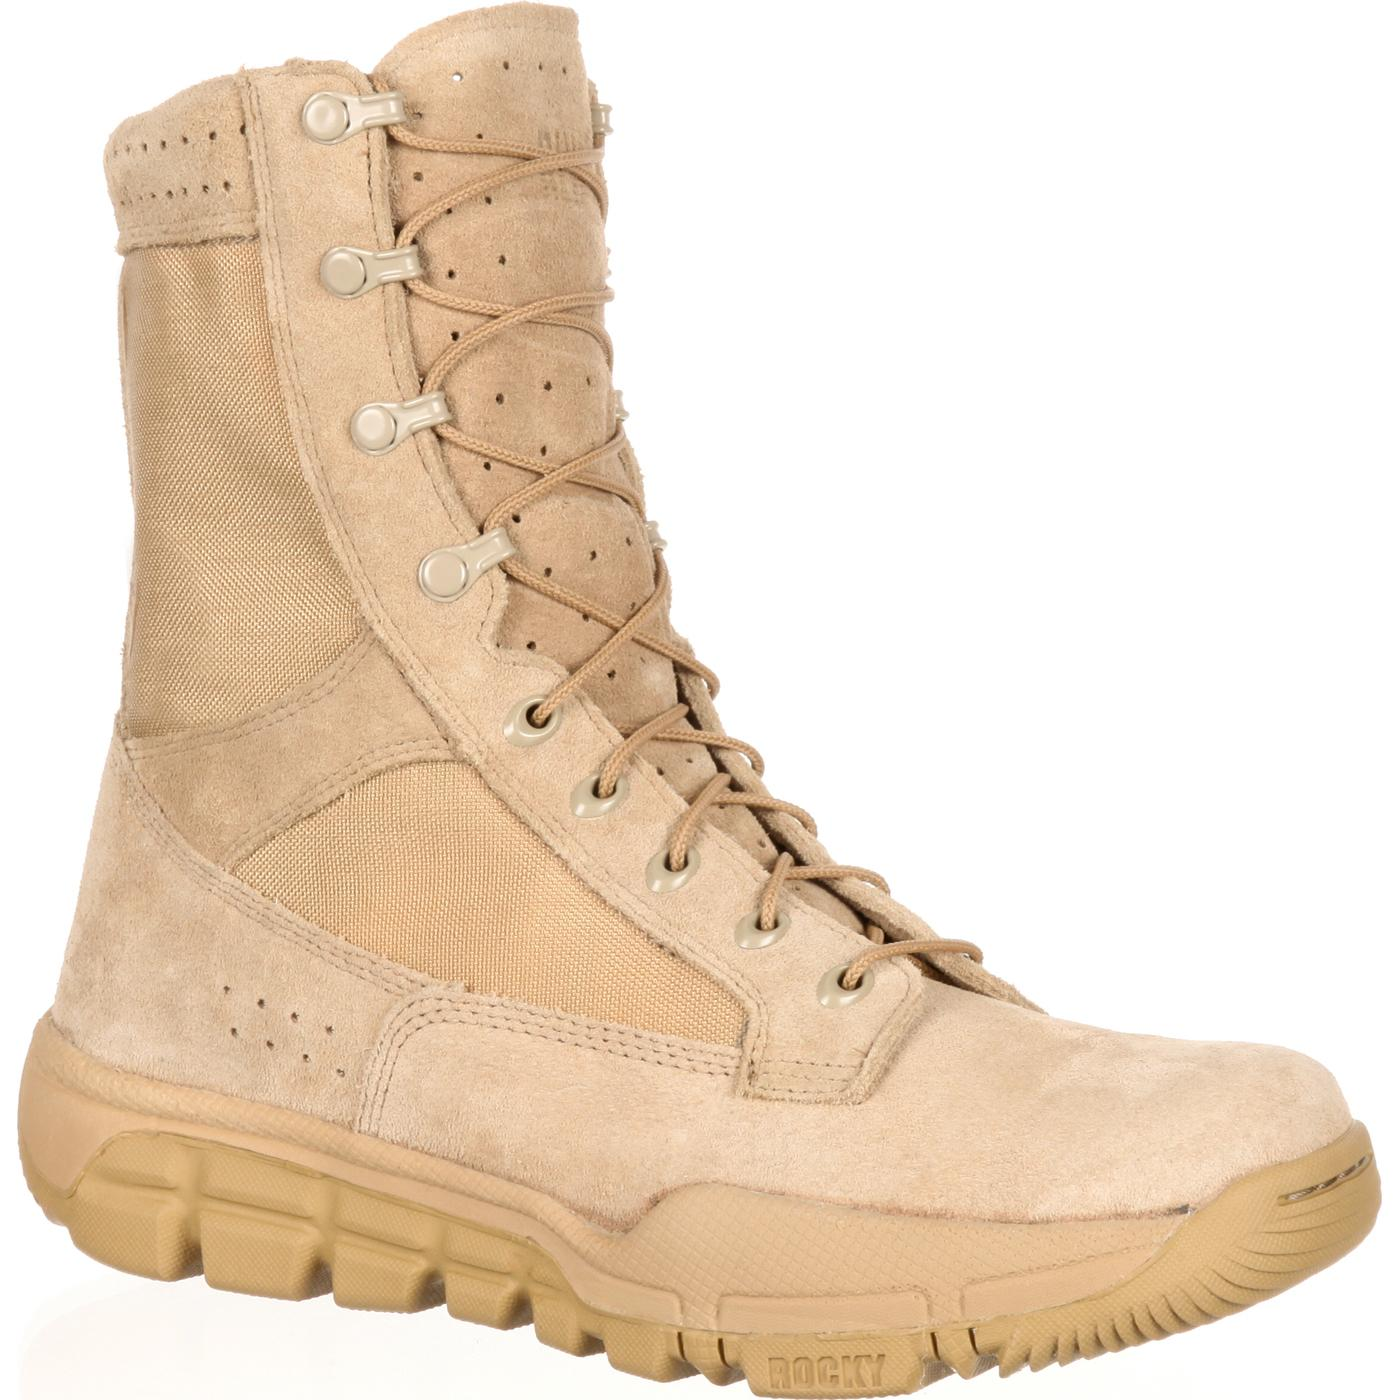 Lightweight Commercial Military Boot from Rocky f335b14b7